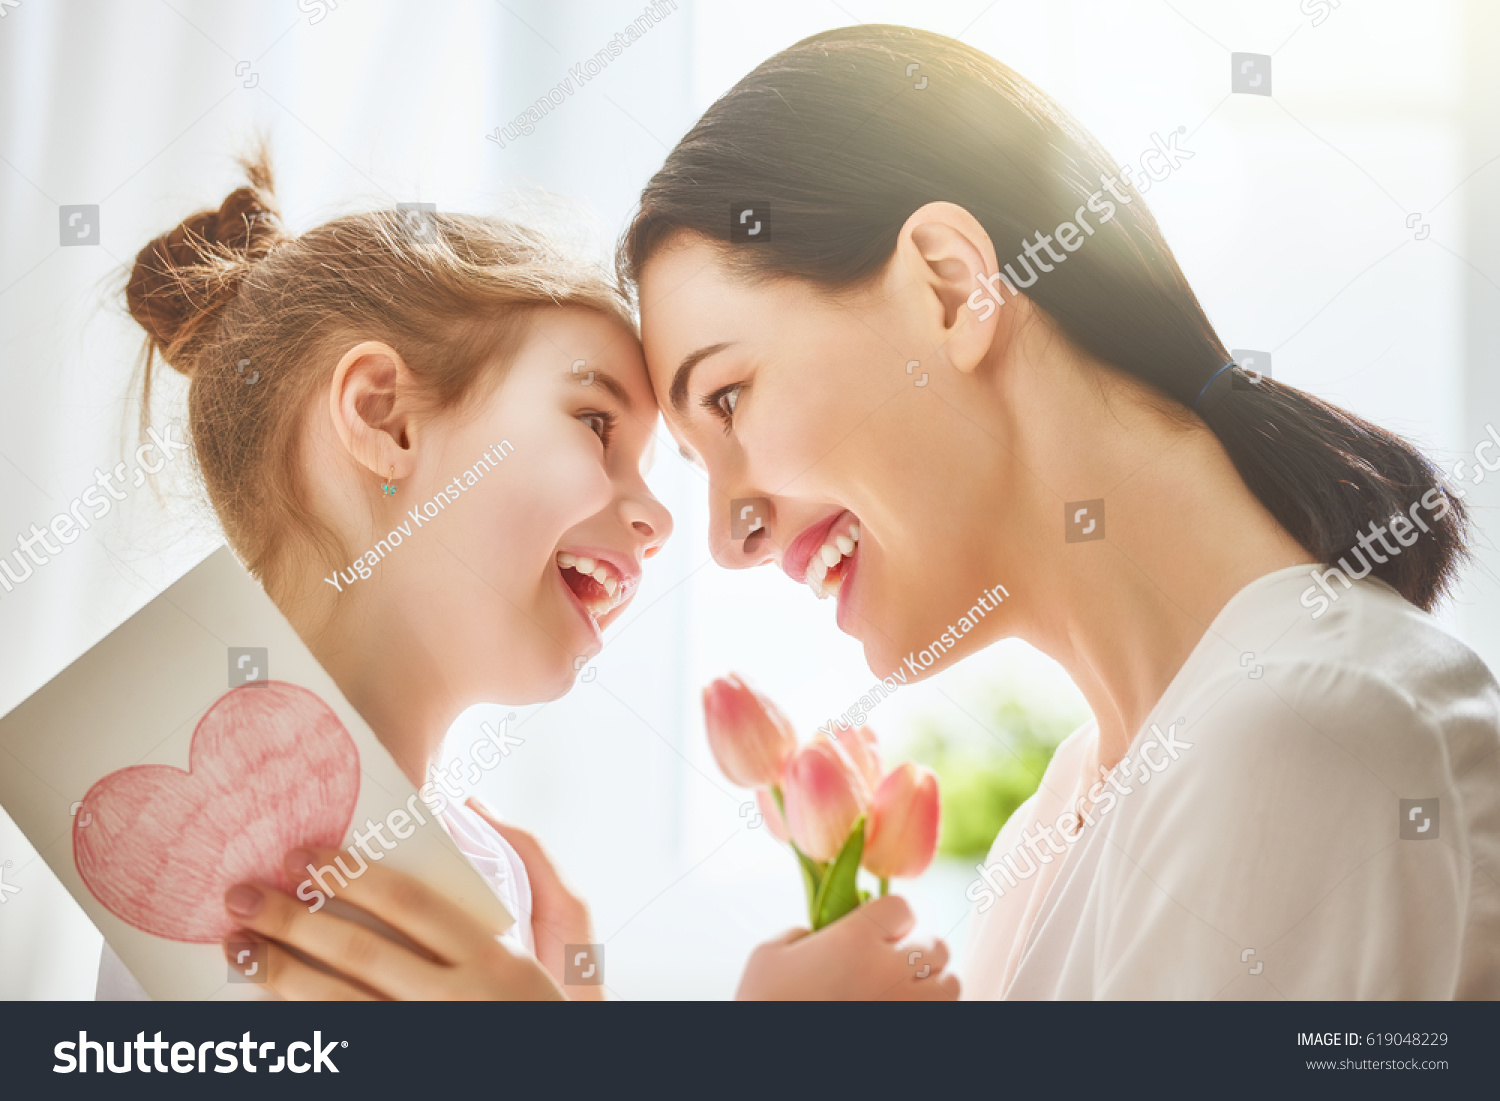 Happy mother's day! Child daughter congratulates mom and gives her flowers tulips and postcard. Mum and girl smiling and hugging. Family holiday and togetherness. #619048229